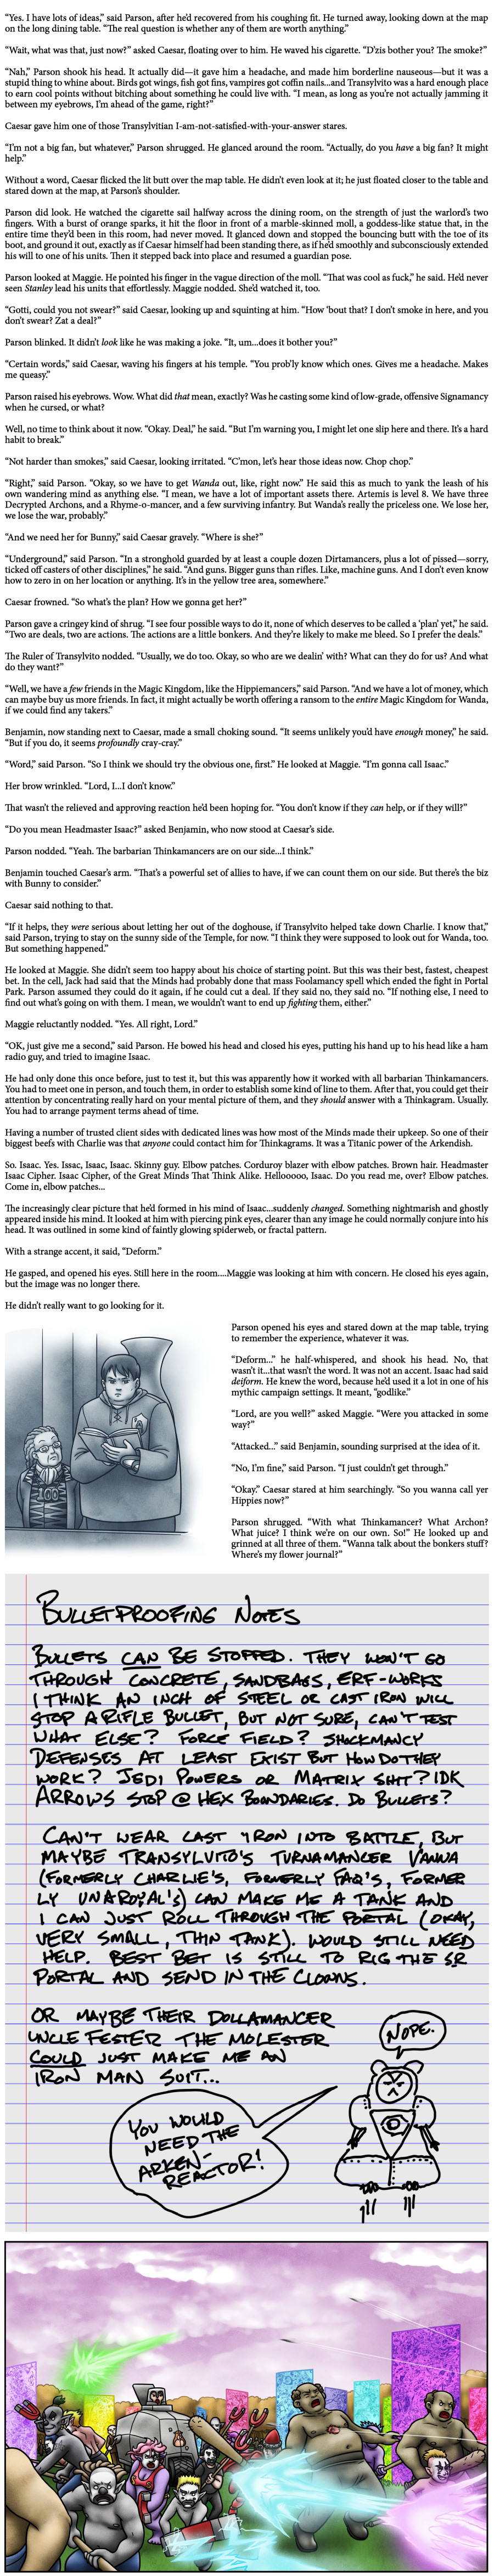 Comic - Book 4 - Page 102